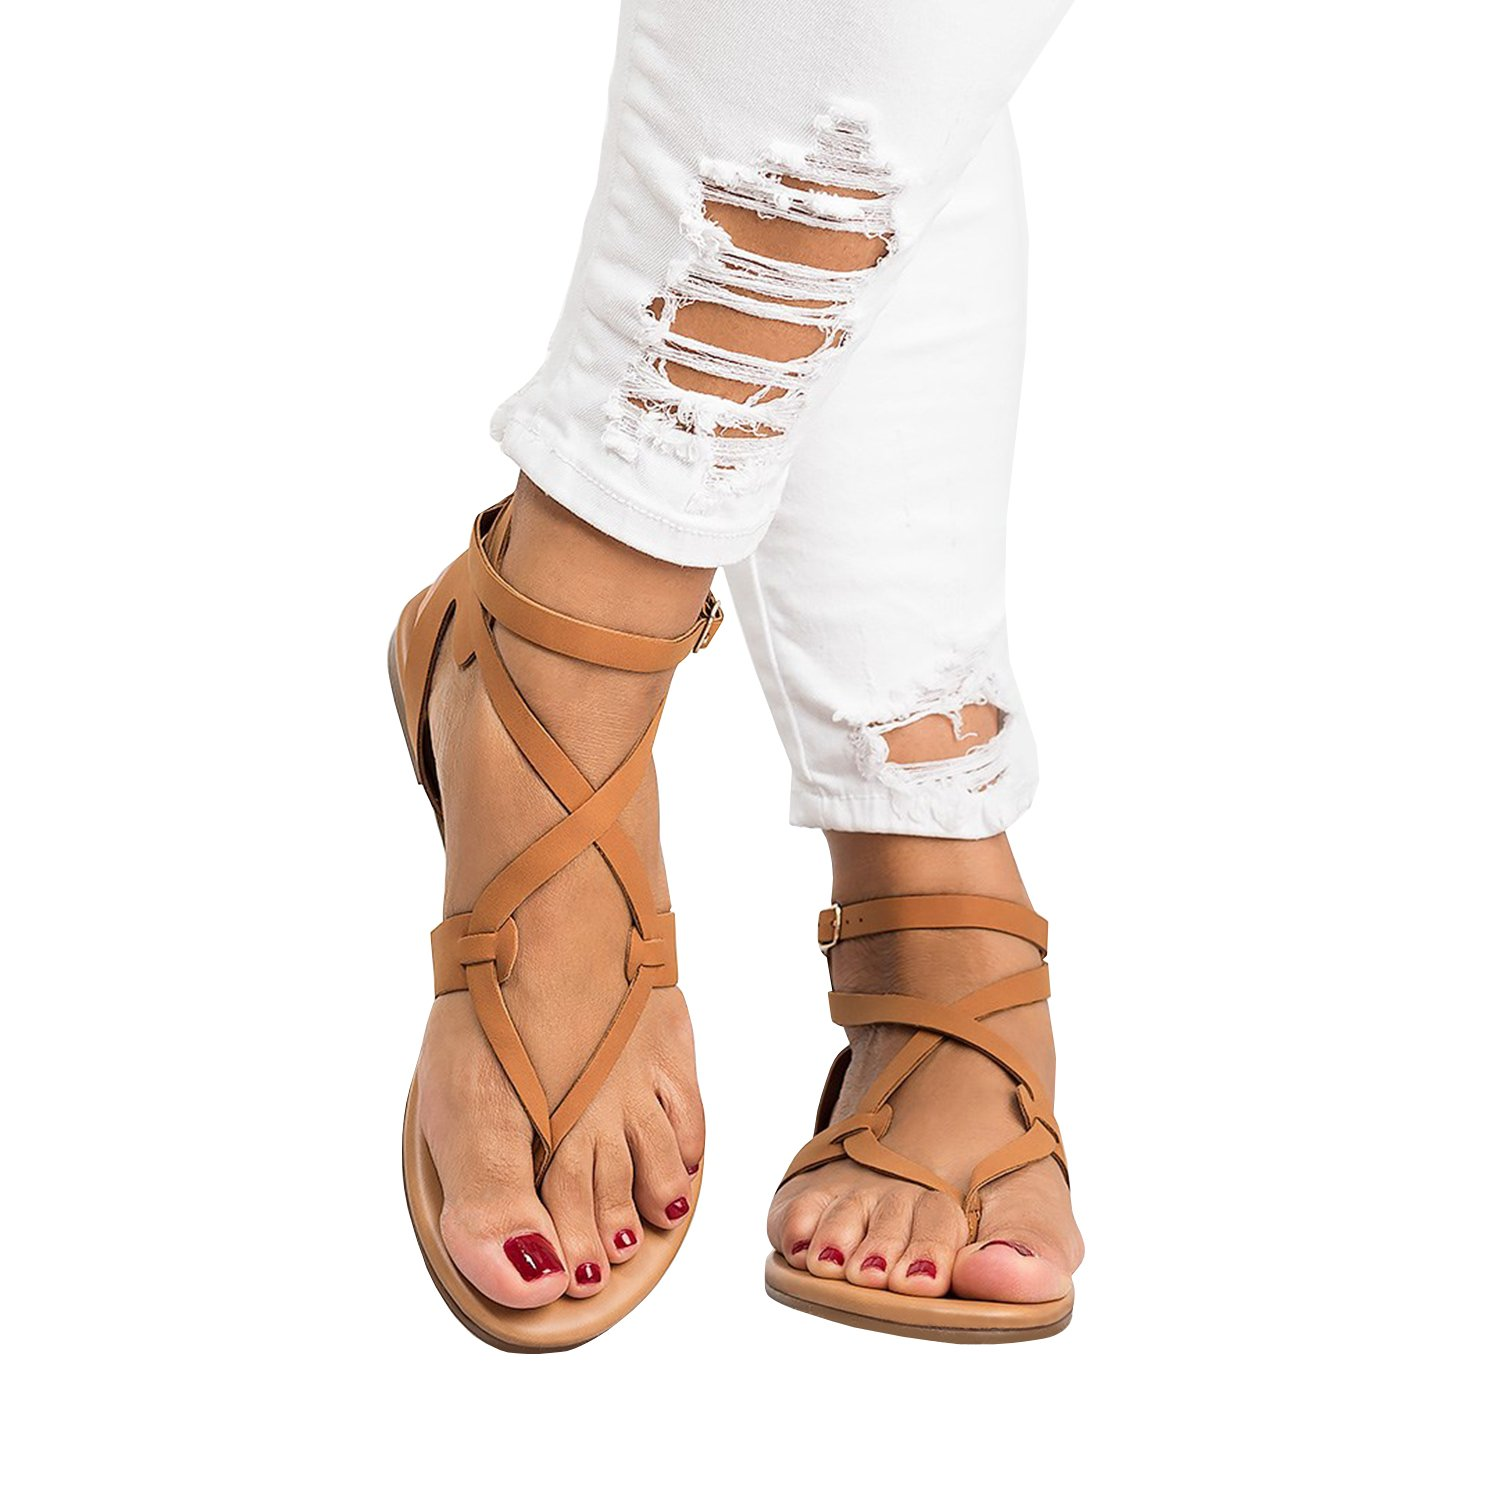 39be4e6d3200 Shelers Womens Sandals Flat Ankle Buckle Gladiator Thong Flip Flop Casual  Summer Shoes  Amazon.co.uk  Shoes   Bags